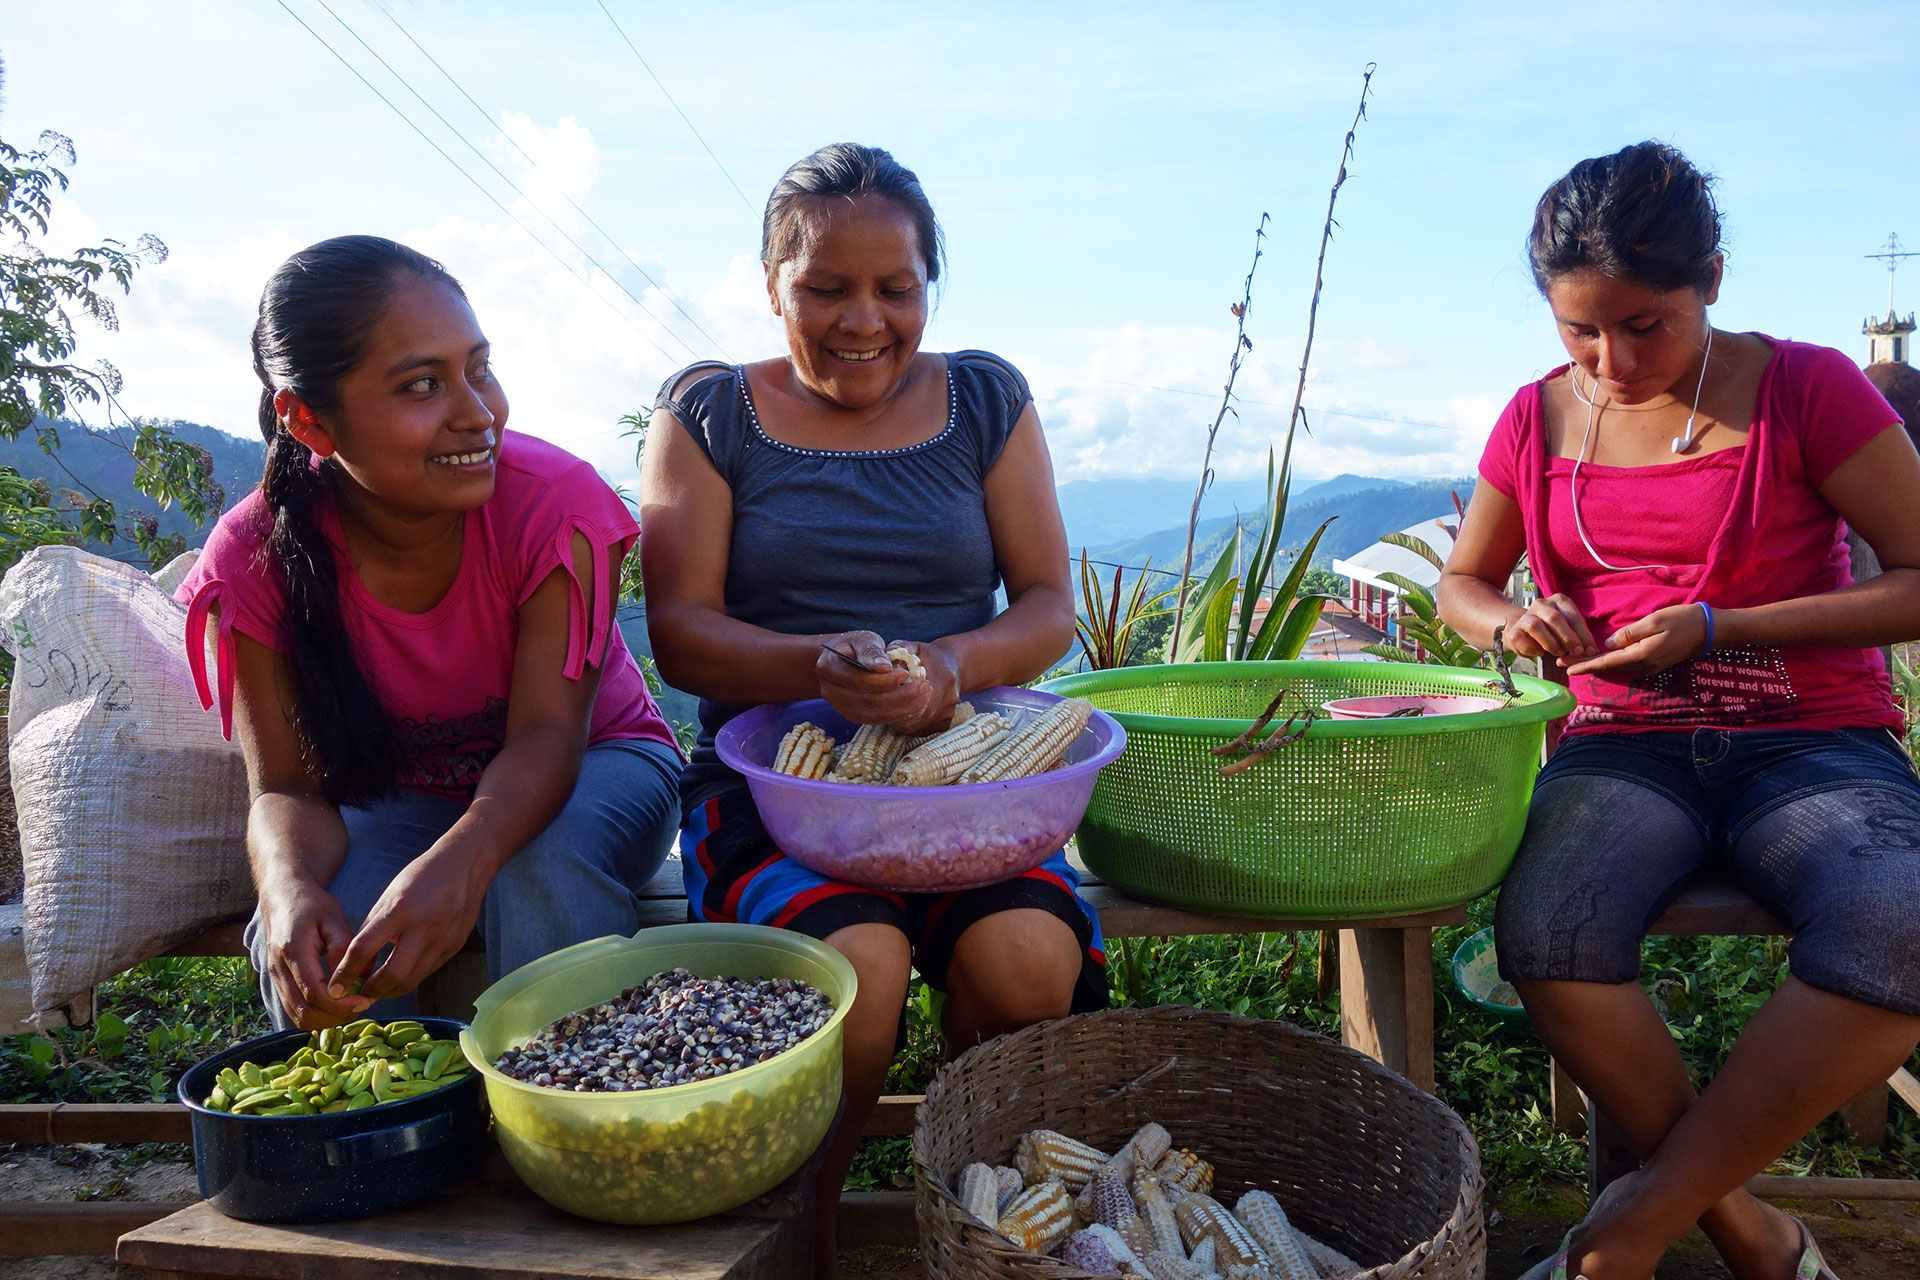 Women sort seeds from vegetables at a farm, fron SEED